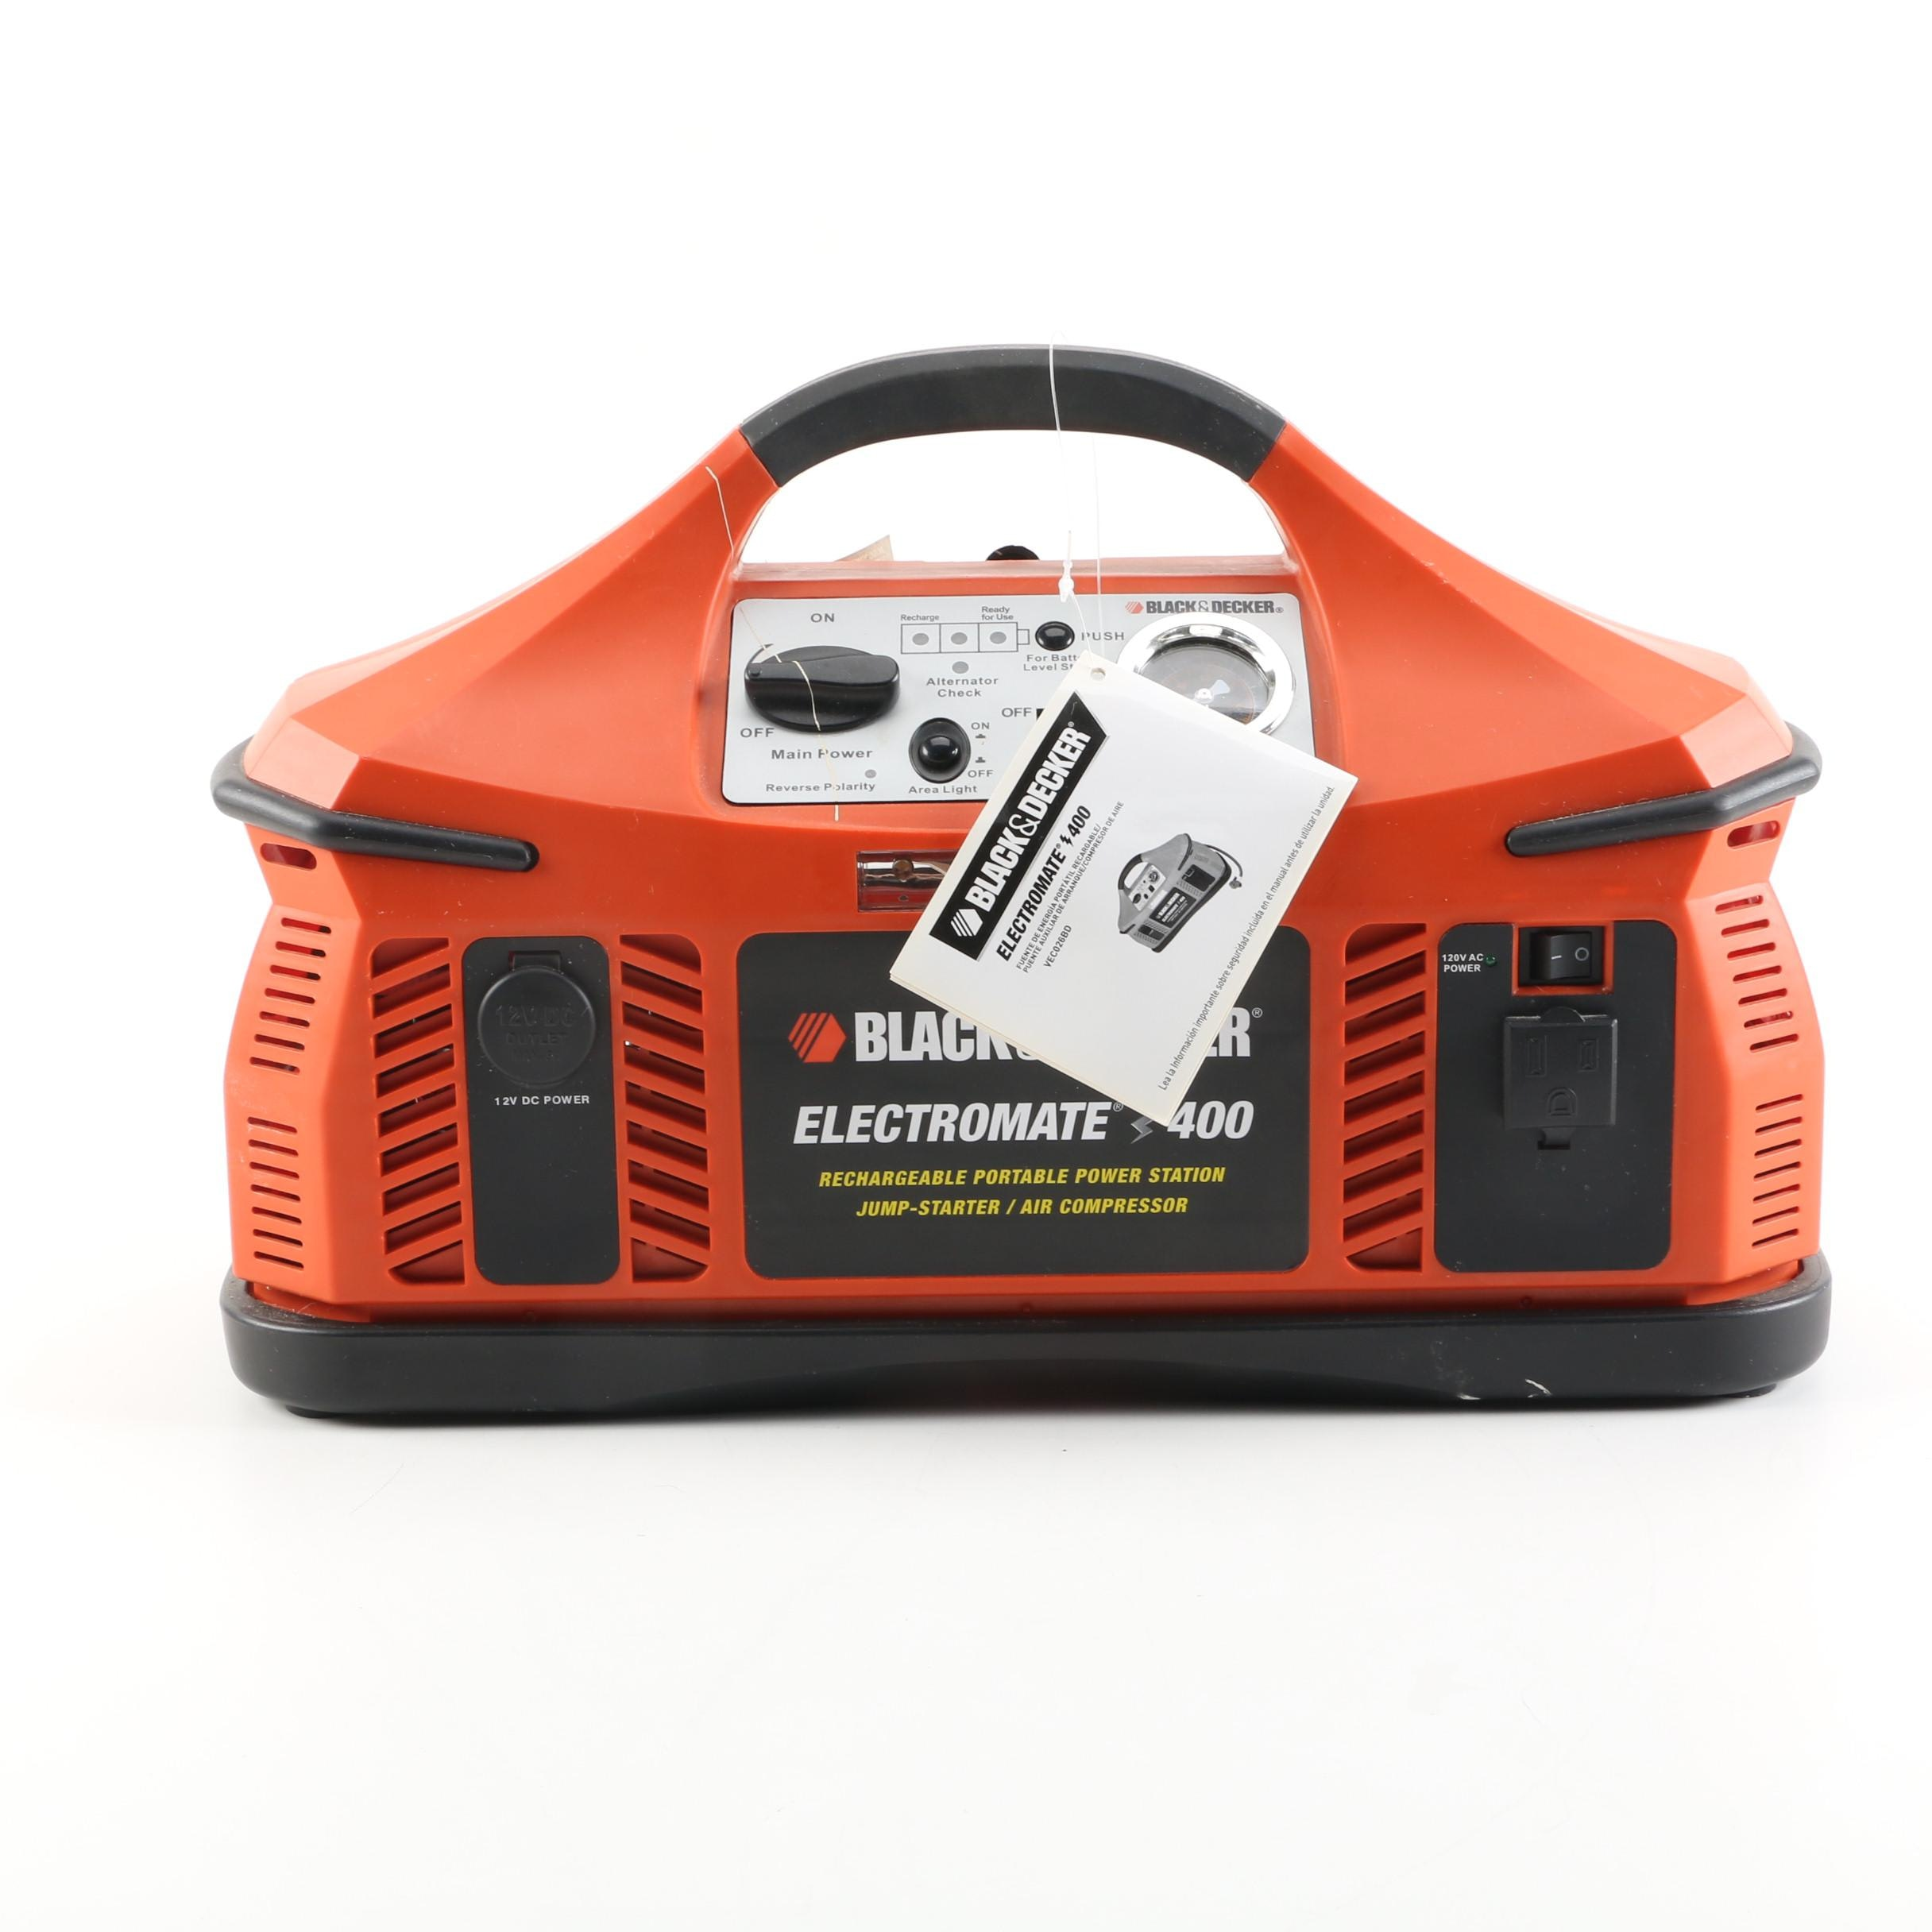 Black & Decker Electromate 400 Portable Power Station and Air Compressor